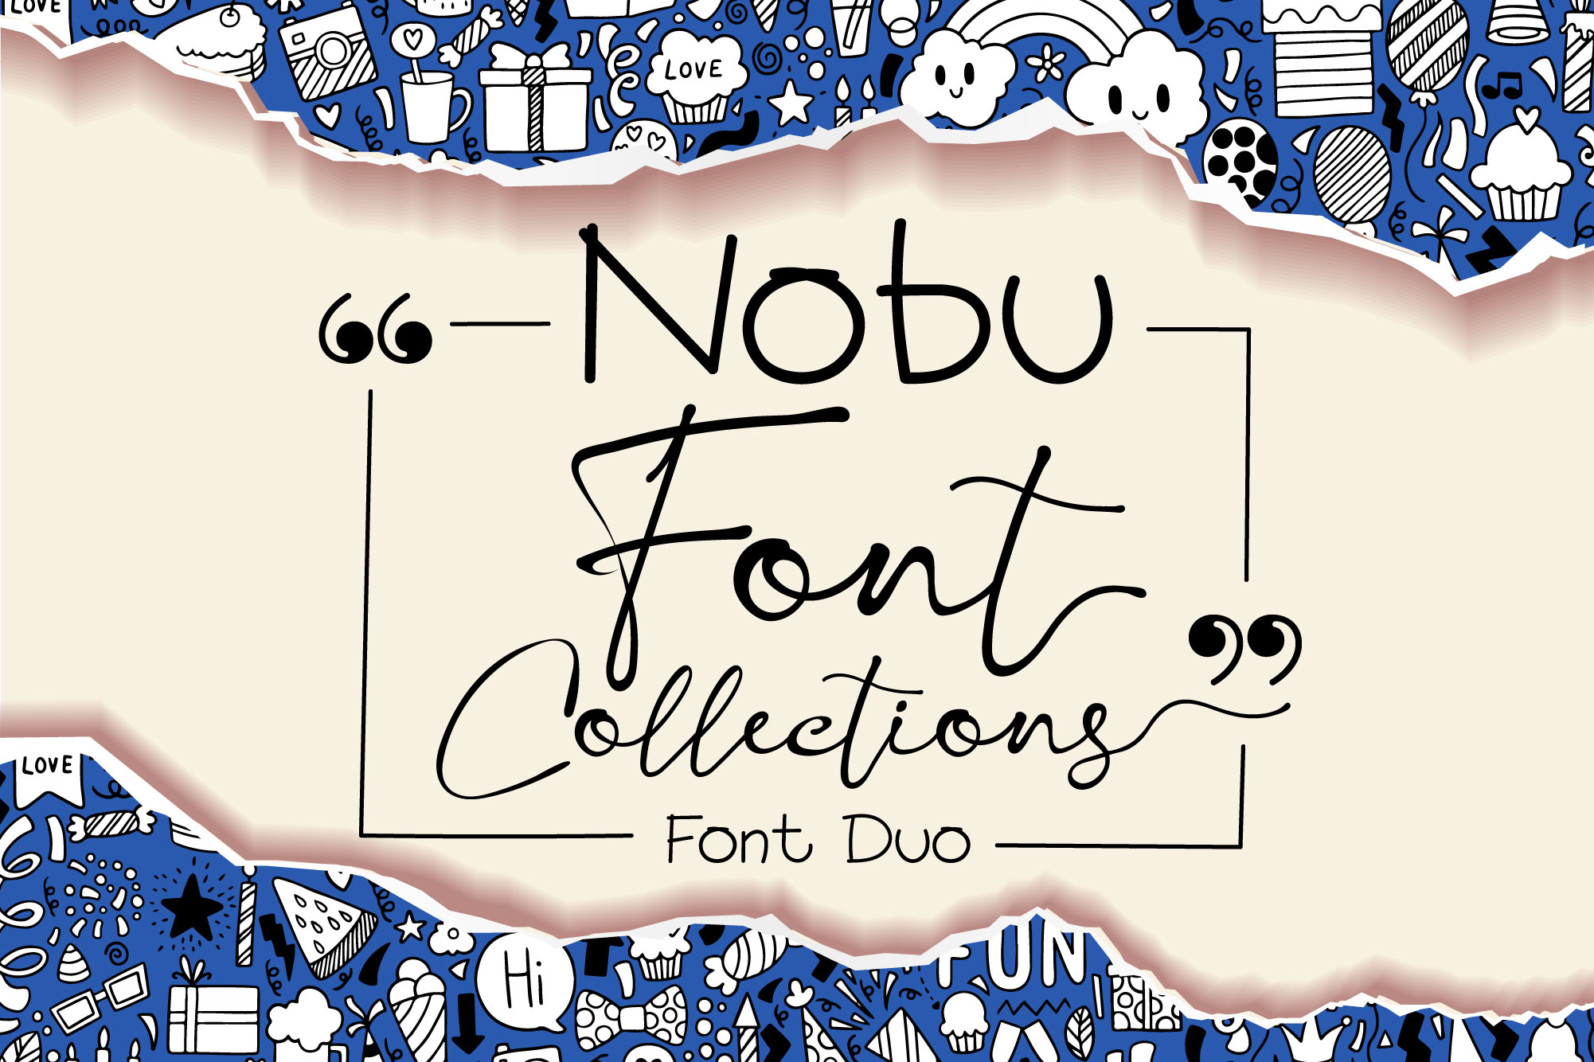 Nobu Collections - Font DUO1 -